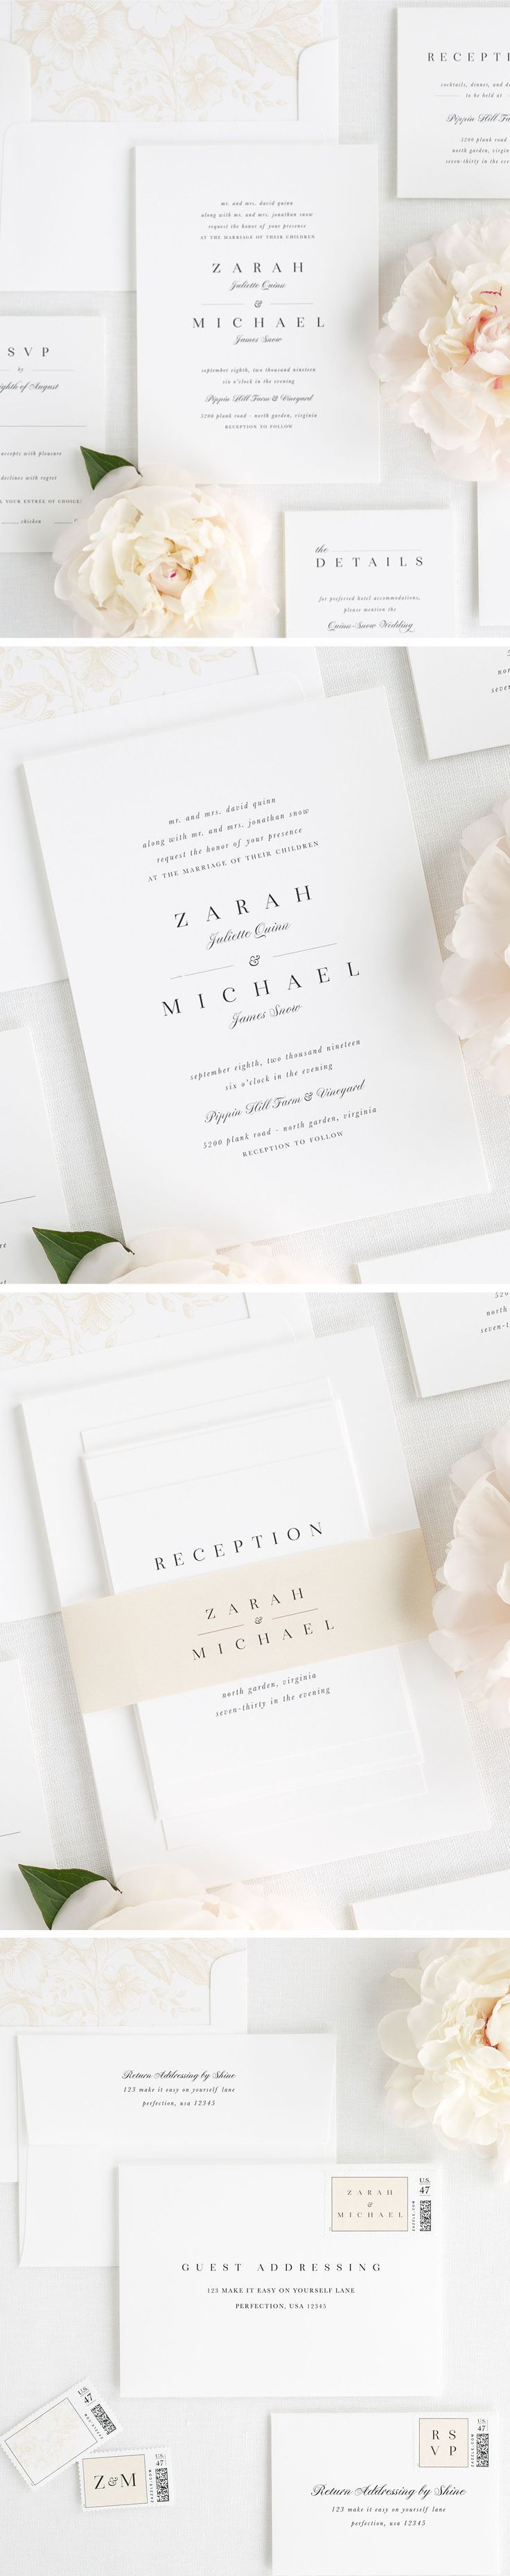 zarah wedding invitations - Weddings Invitations